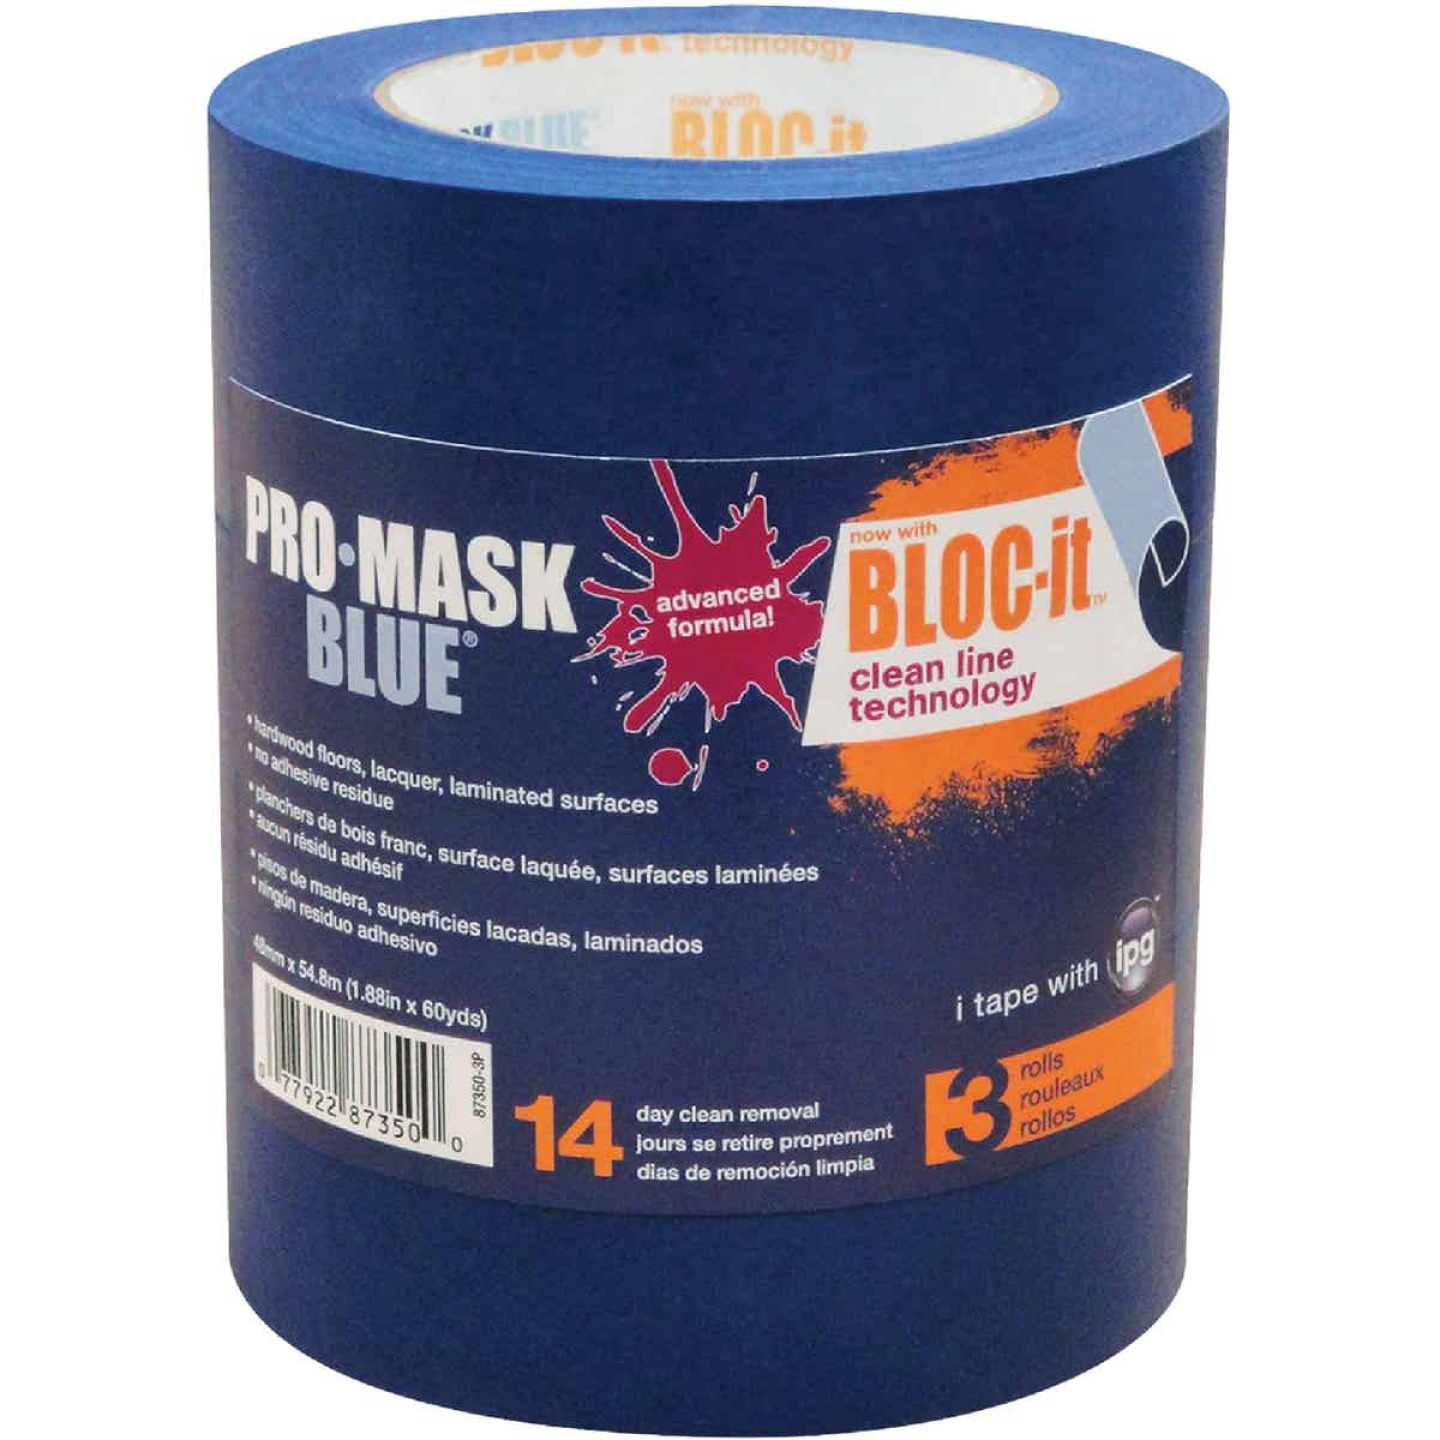 IPG ProMask Blue 1.88 In. x 60 Yd. Bloc-It Masking Tape (3-Pack) Image 1